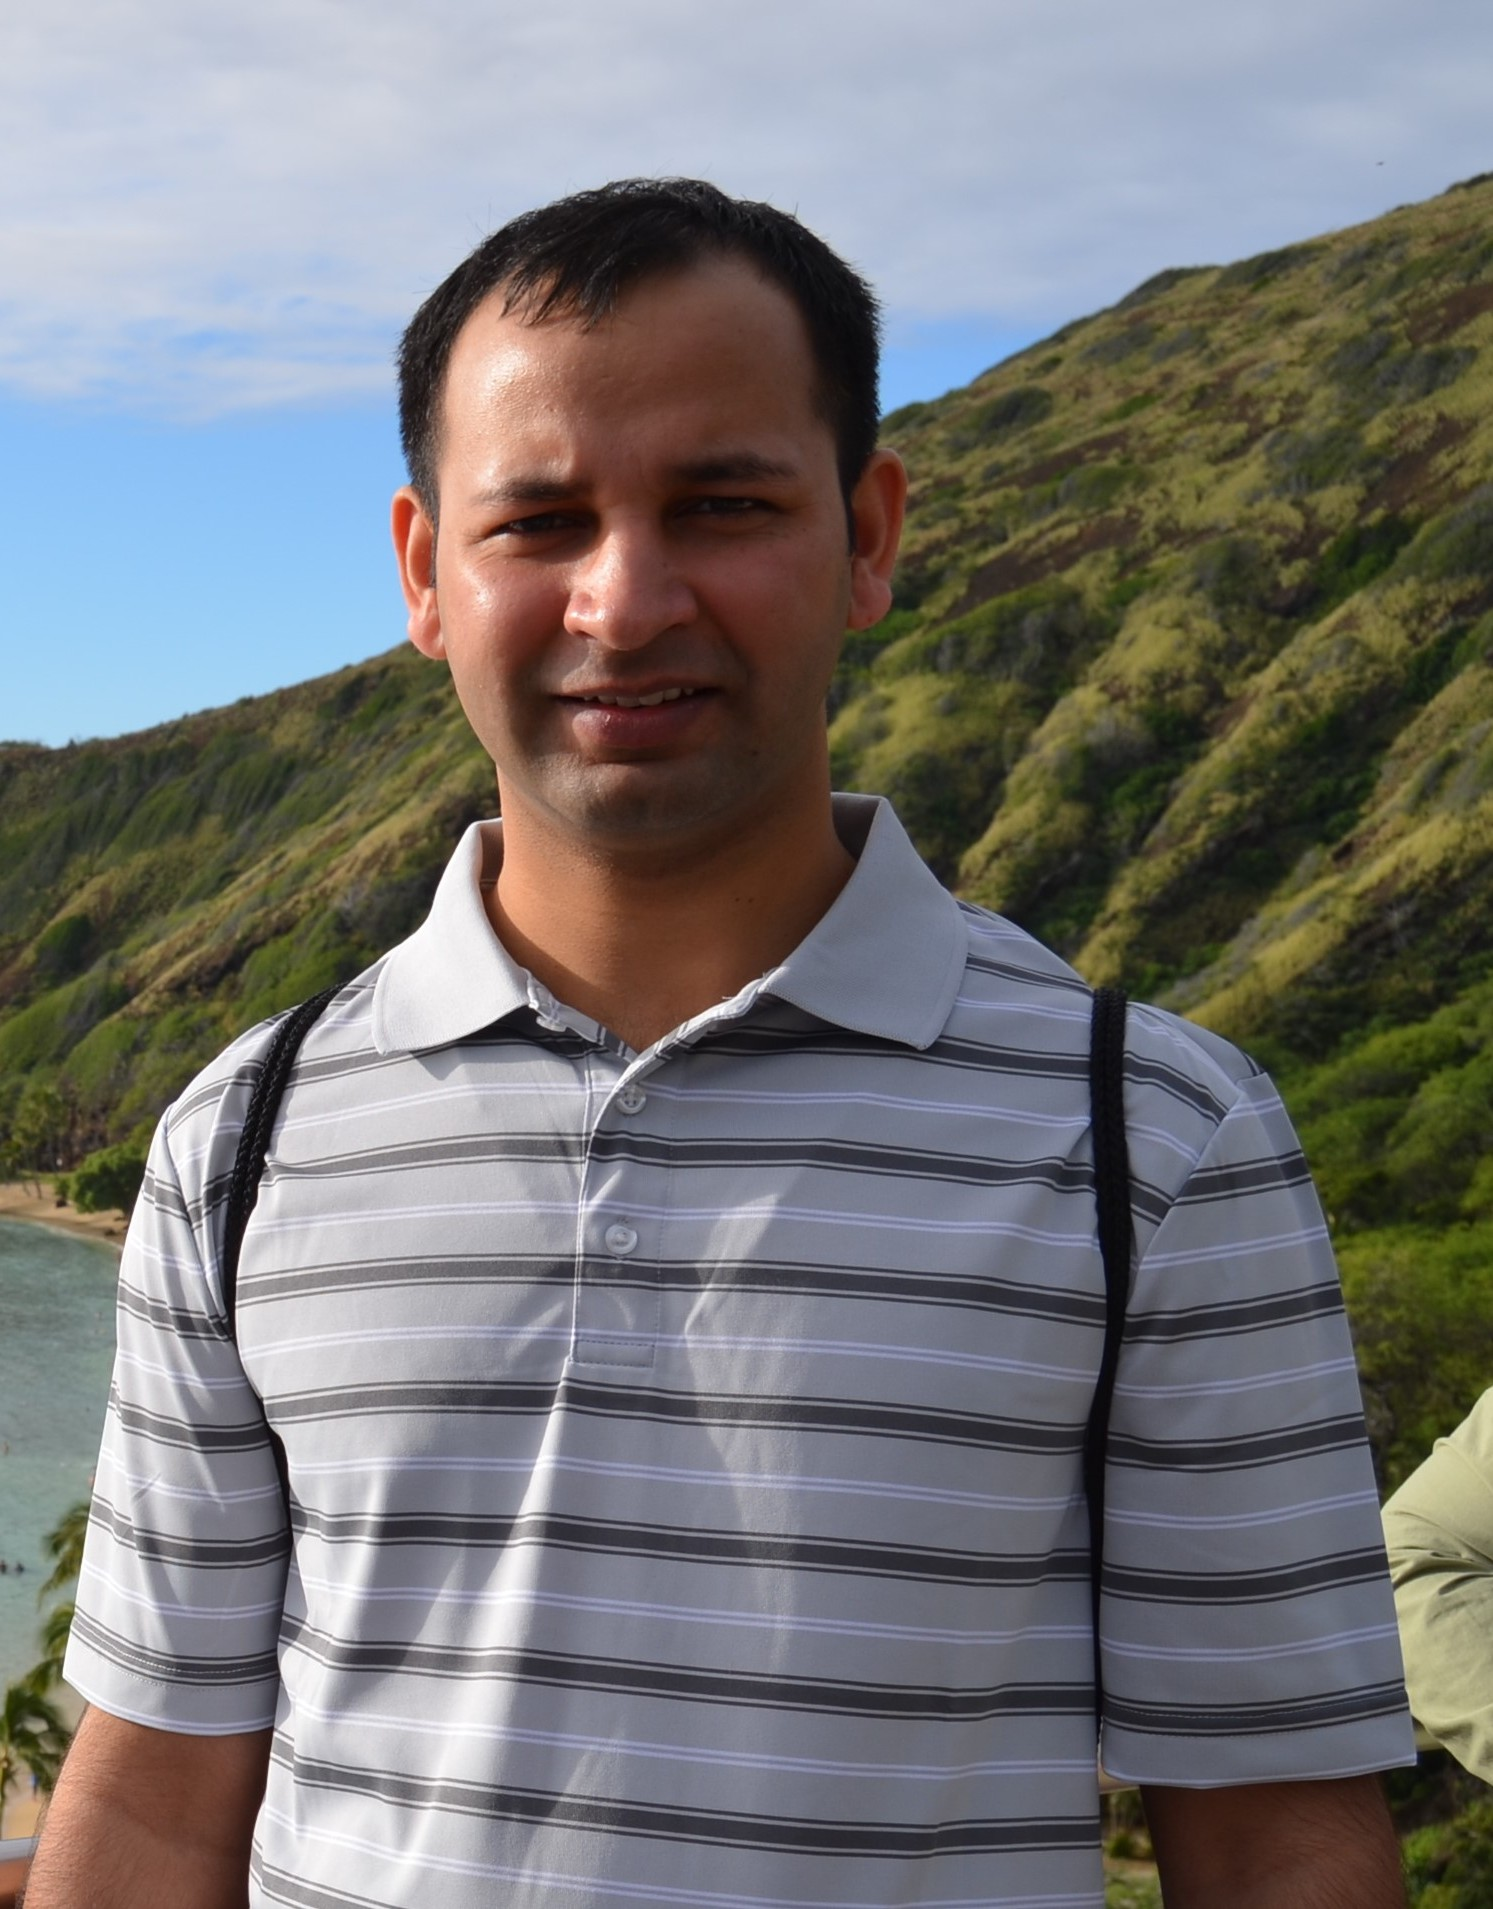 ankit verma Dr ankit verma is a orthopedician in gurgaon and practices at artemis hospital  dr ankit verma has 10 years of experience, and is available for.